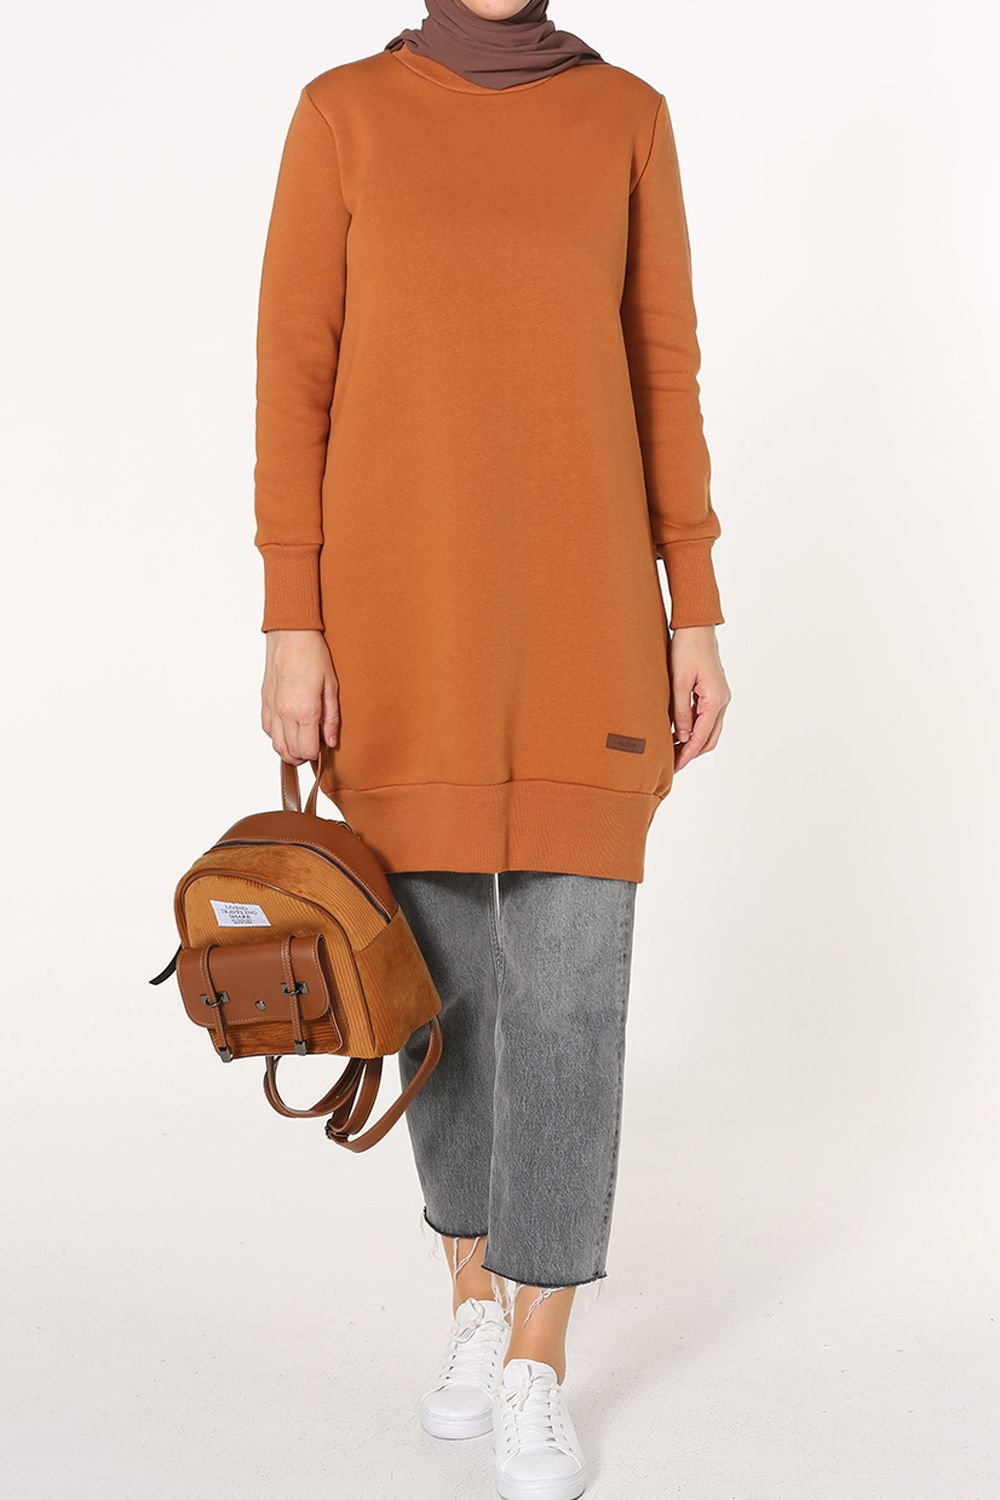 COMBED COTTON TUNIC WITH BANDED HEM